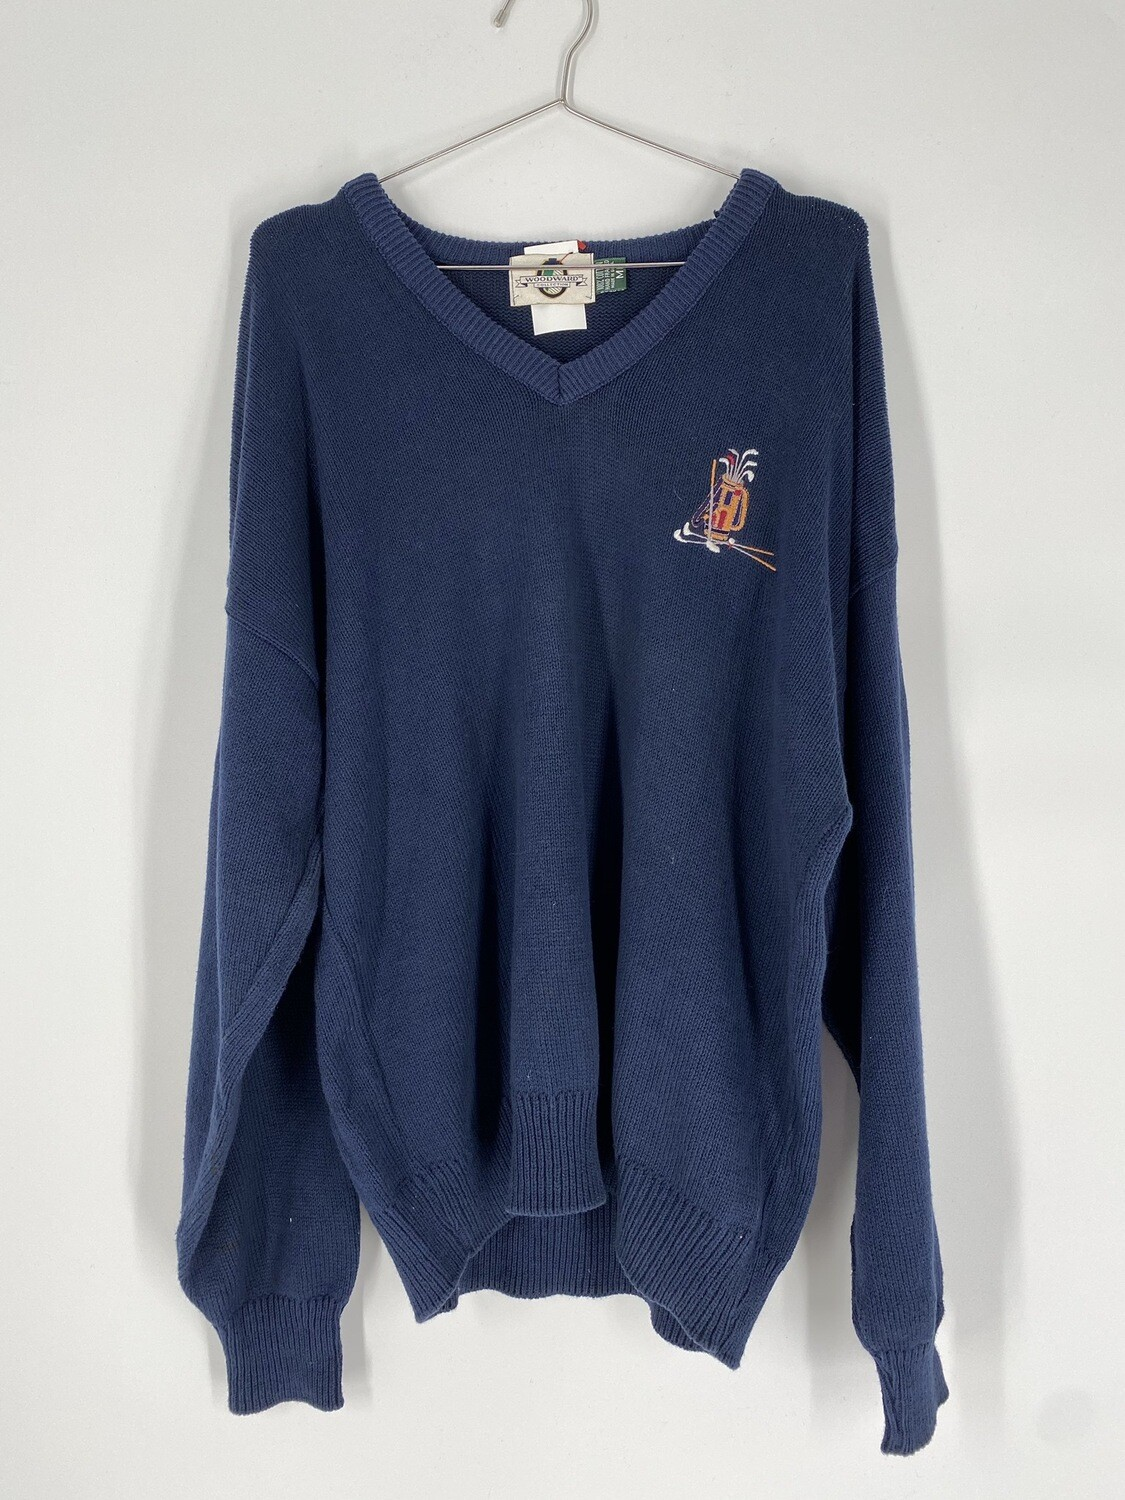 Embroidered Golf Sweater Size M